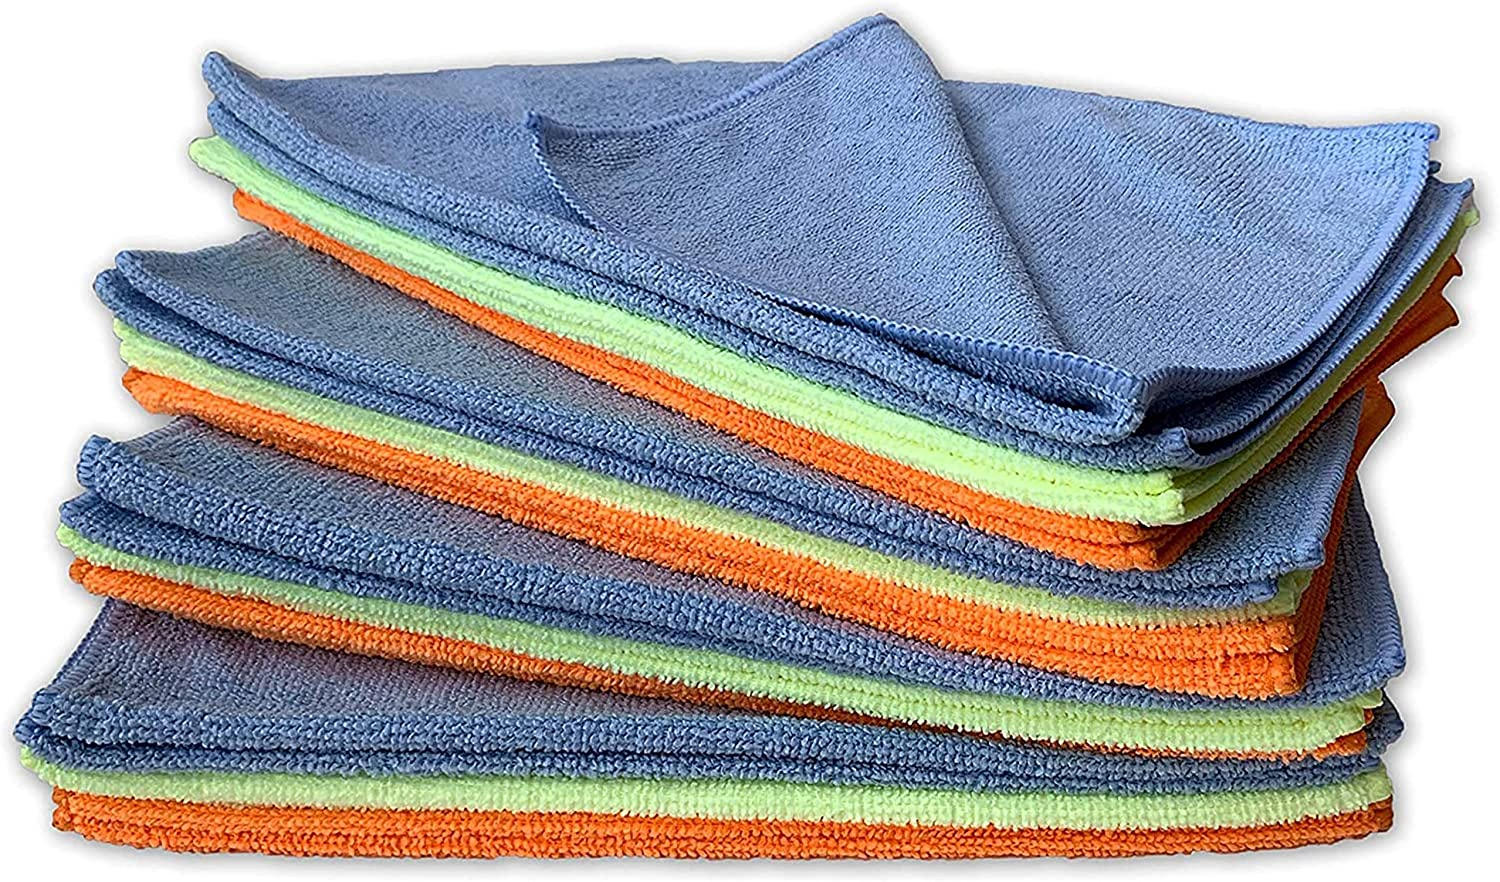 Armor All Microfiber Car Cleaning Towels, Cleaner for Bugs, Dirt & Dust, For Cars & Truck & Motorcycle, Pack of 24, 17622